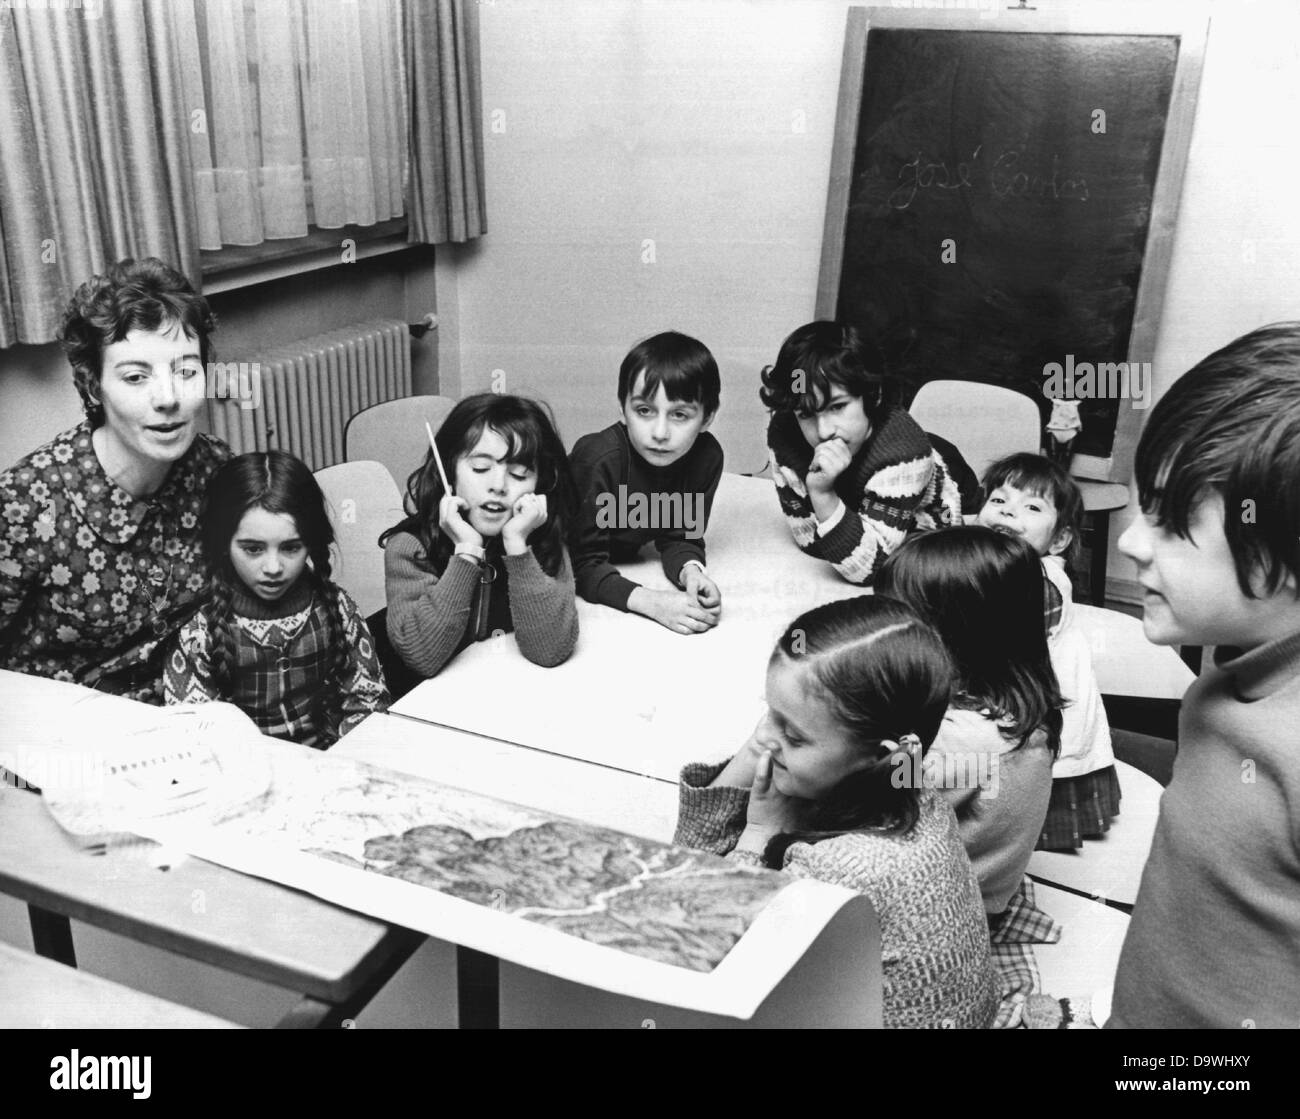 Children of foreign workers learn the German language with toys and crafting in the Don Bosco House in Soest in - Stock Image